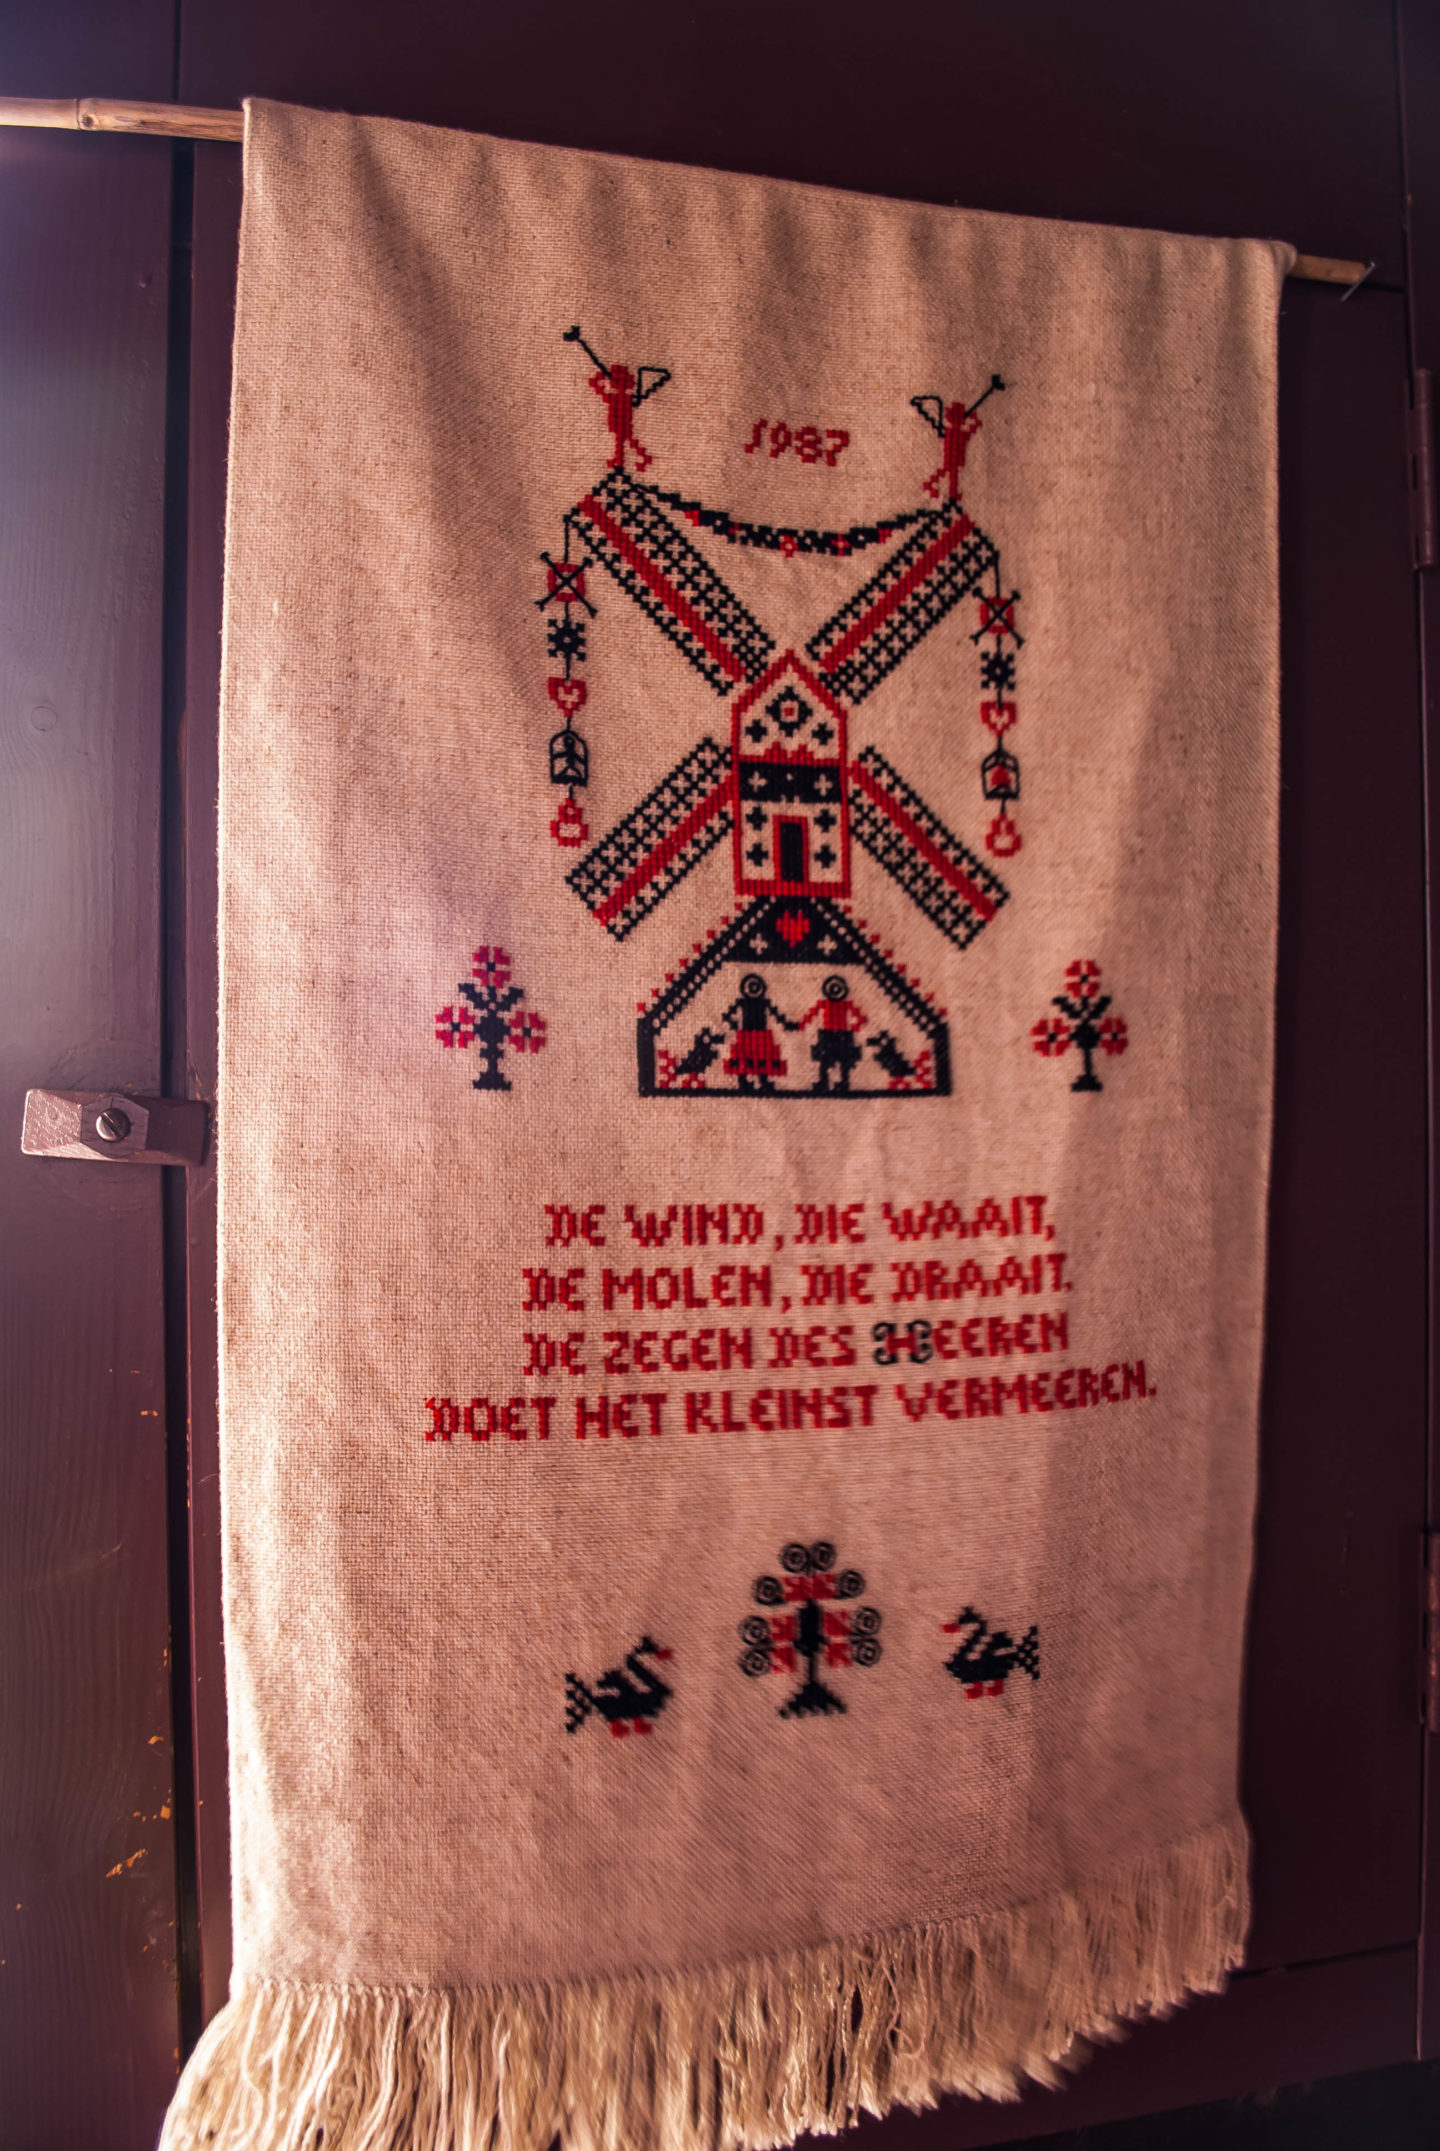 Embroidery hanging in one of the windmills. Rough translation: 'The wind that blows, the mill that turns, the blessing of the Lord that makes the small increase.'